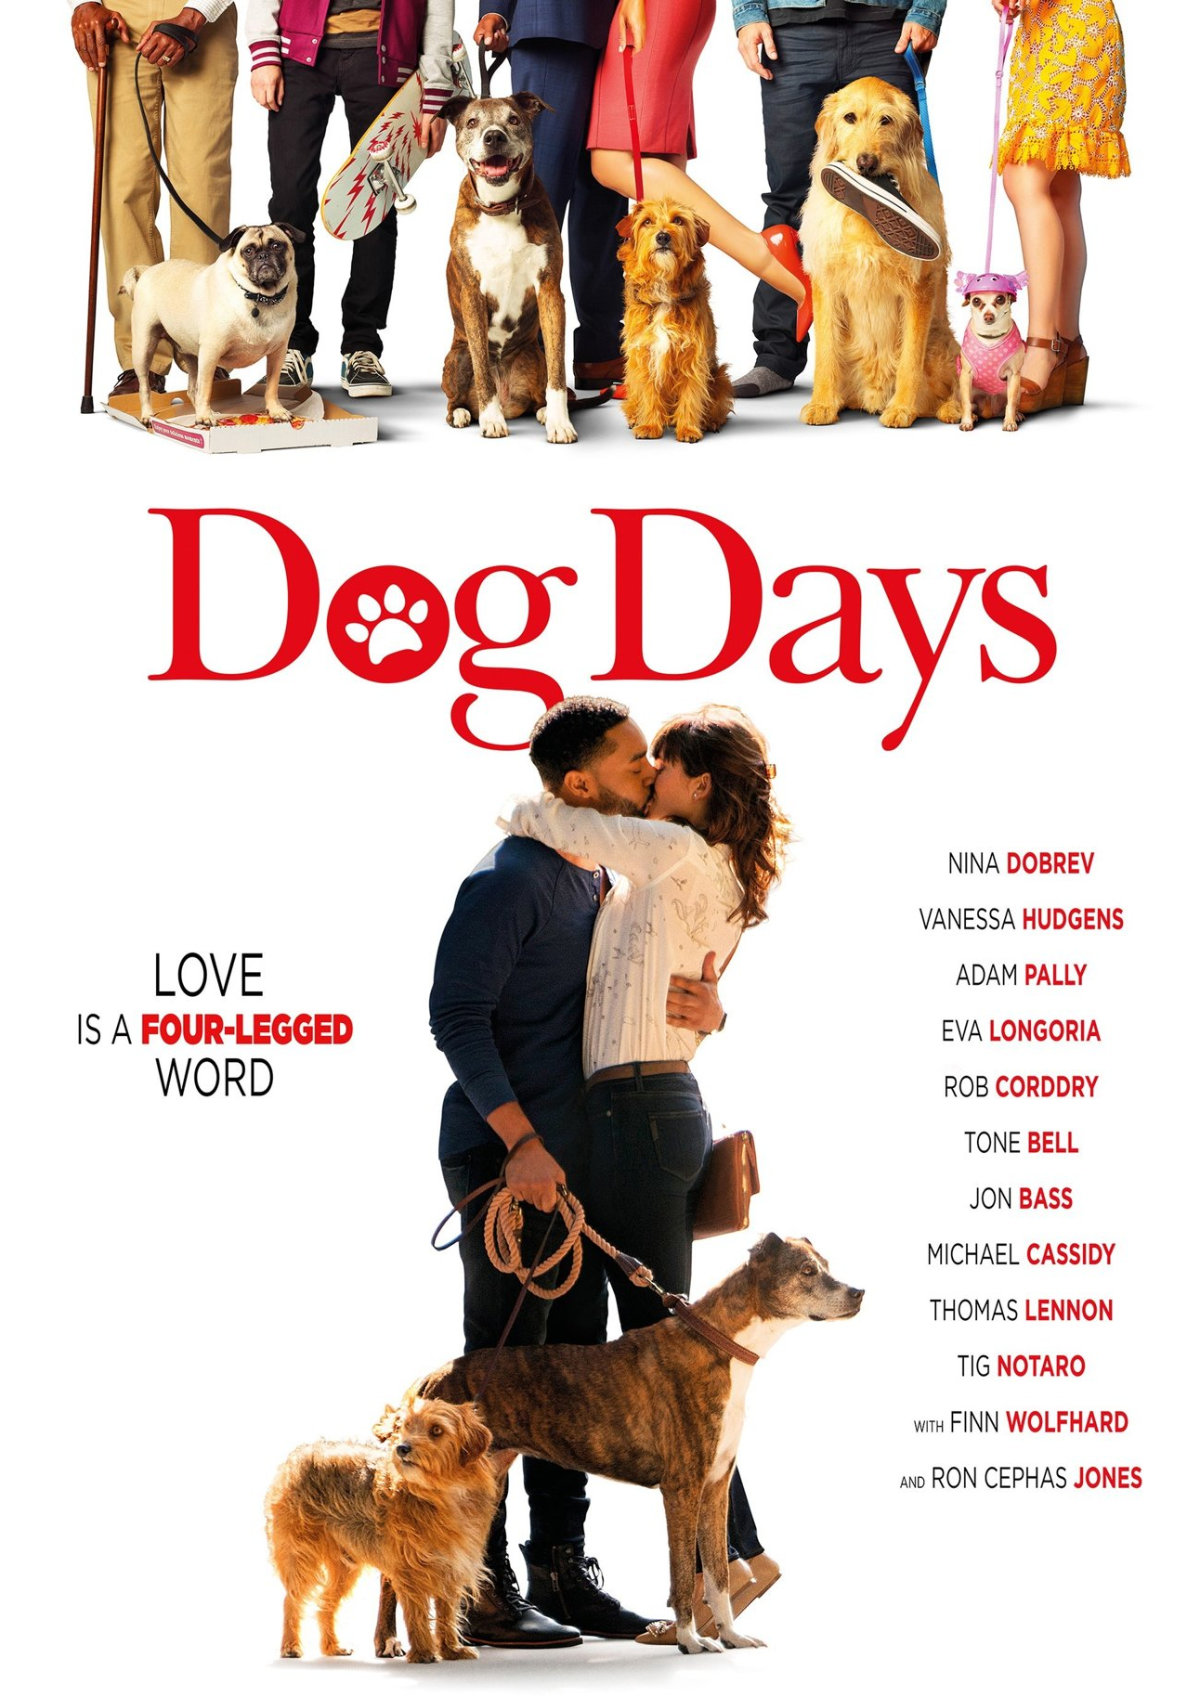 'Dog Days' movie poster